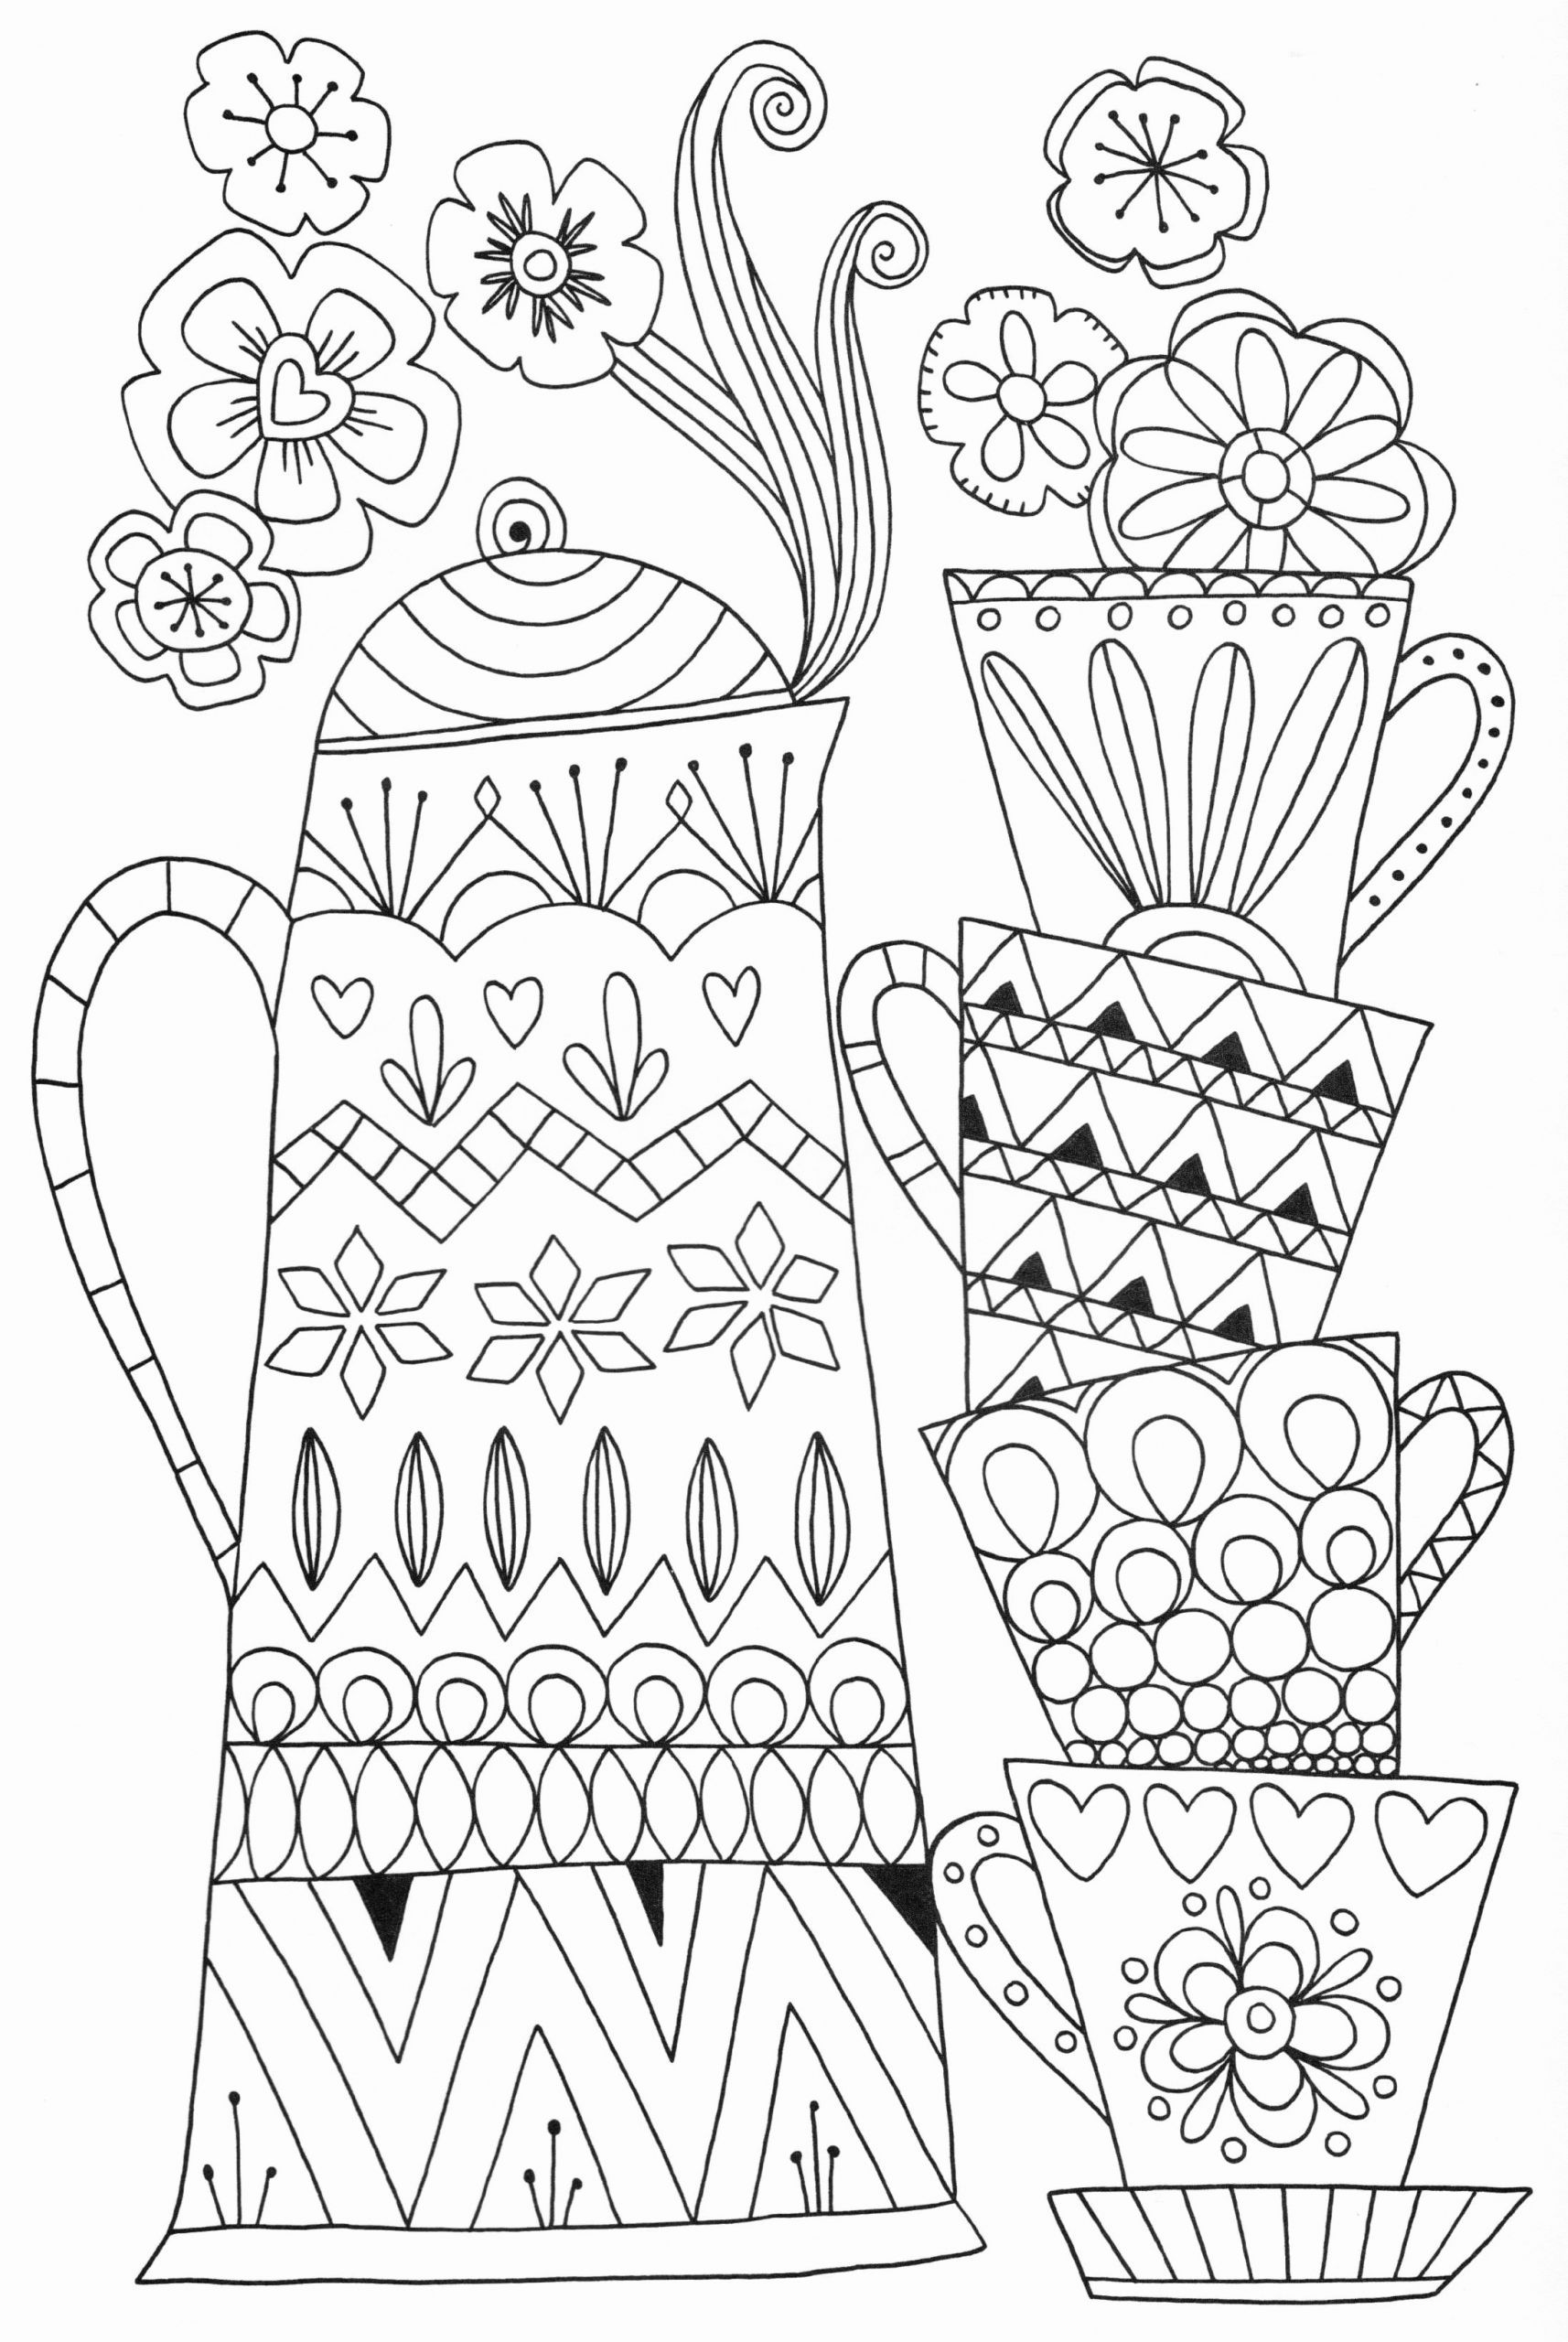 mary engelbreit coloring pages pin on coloring engelbreit pages mary coloring